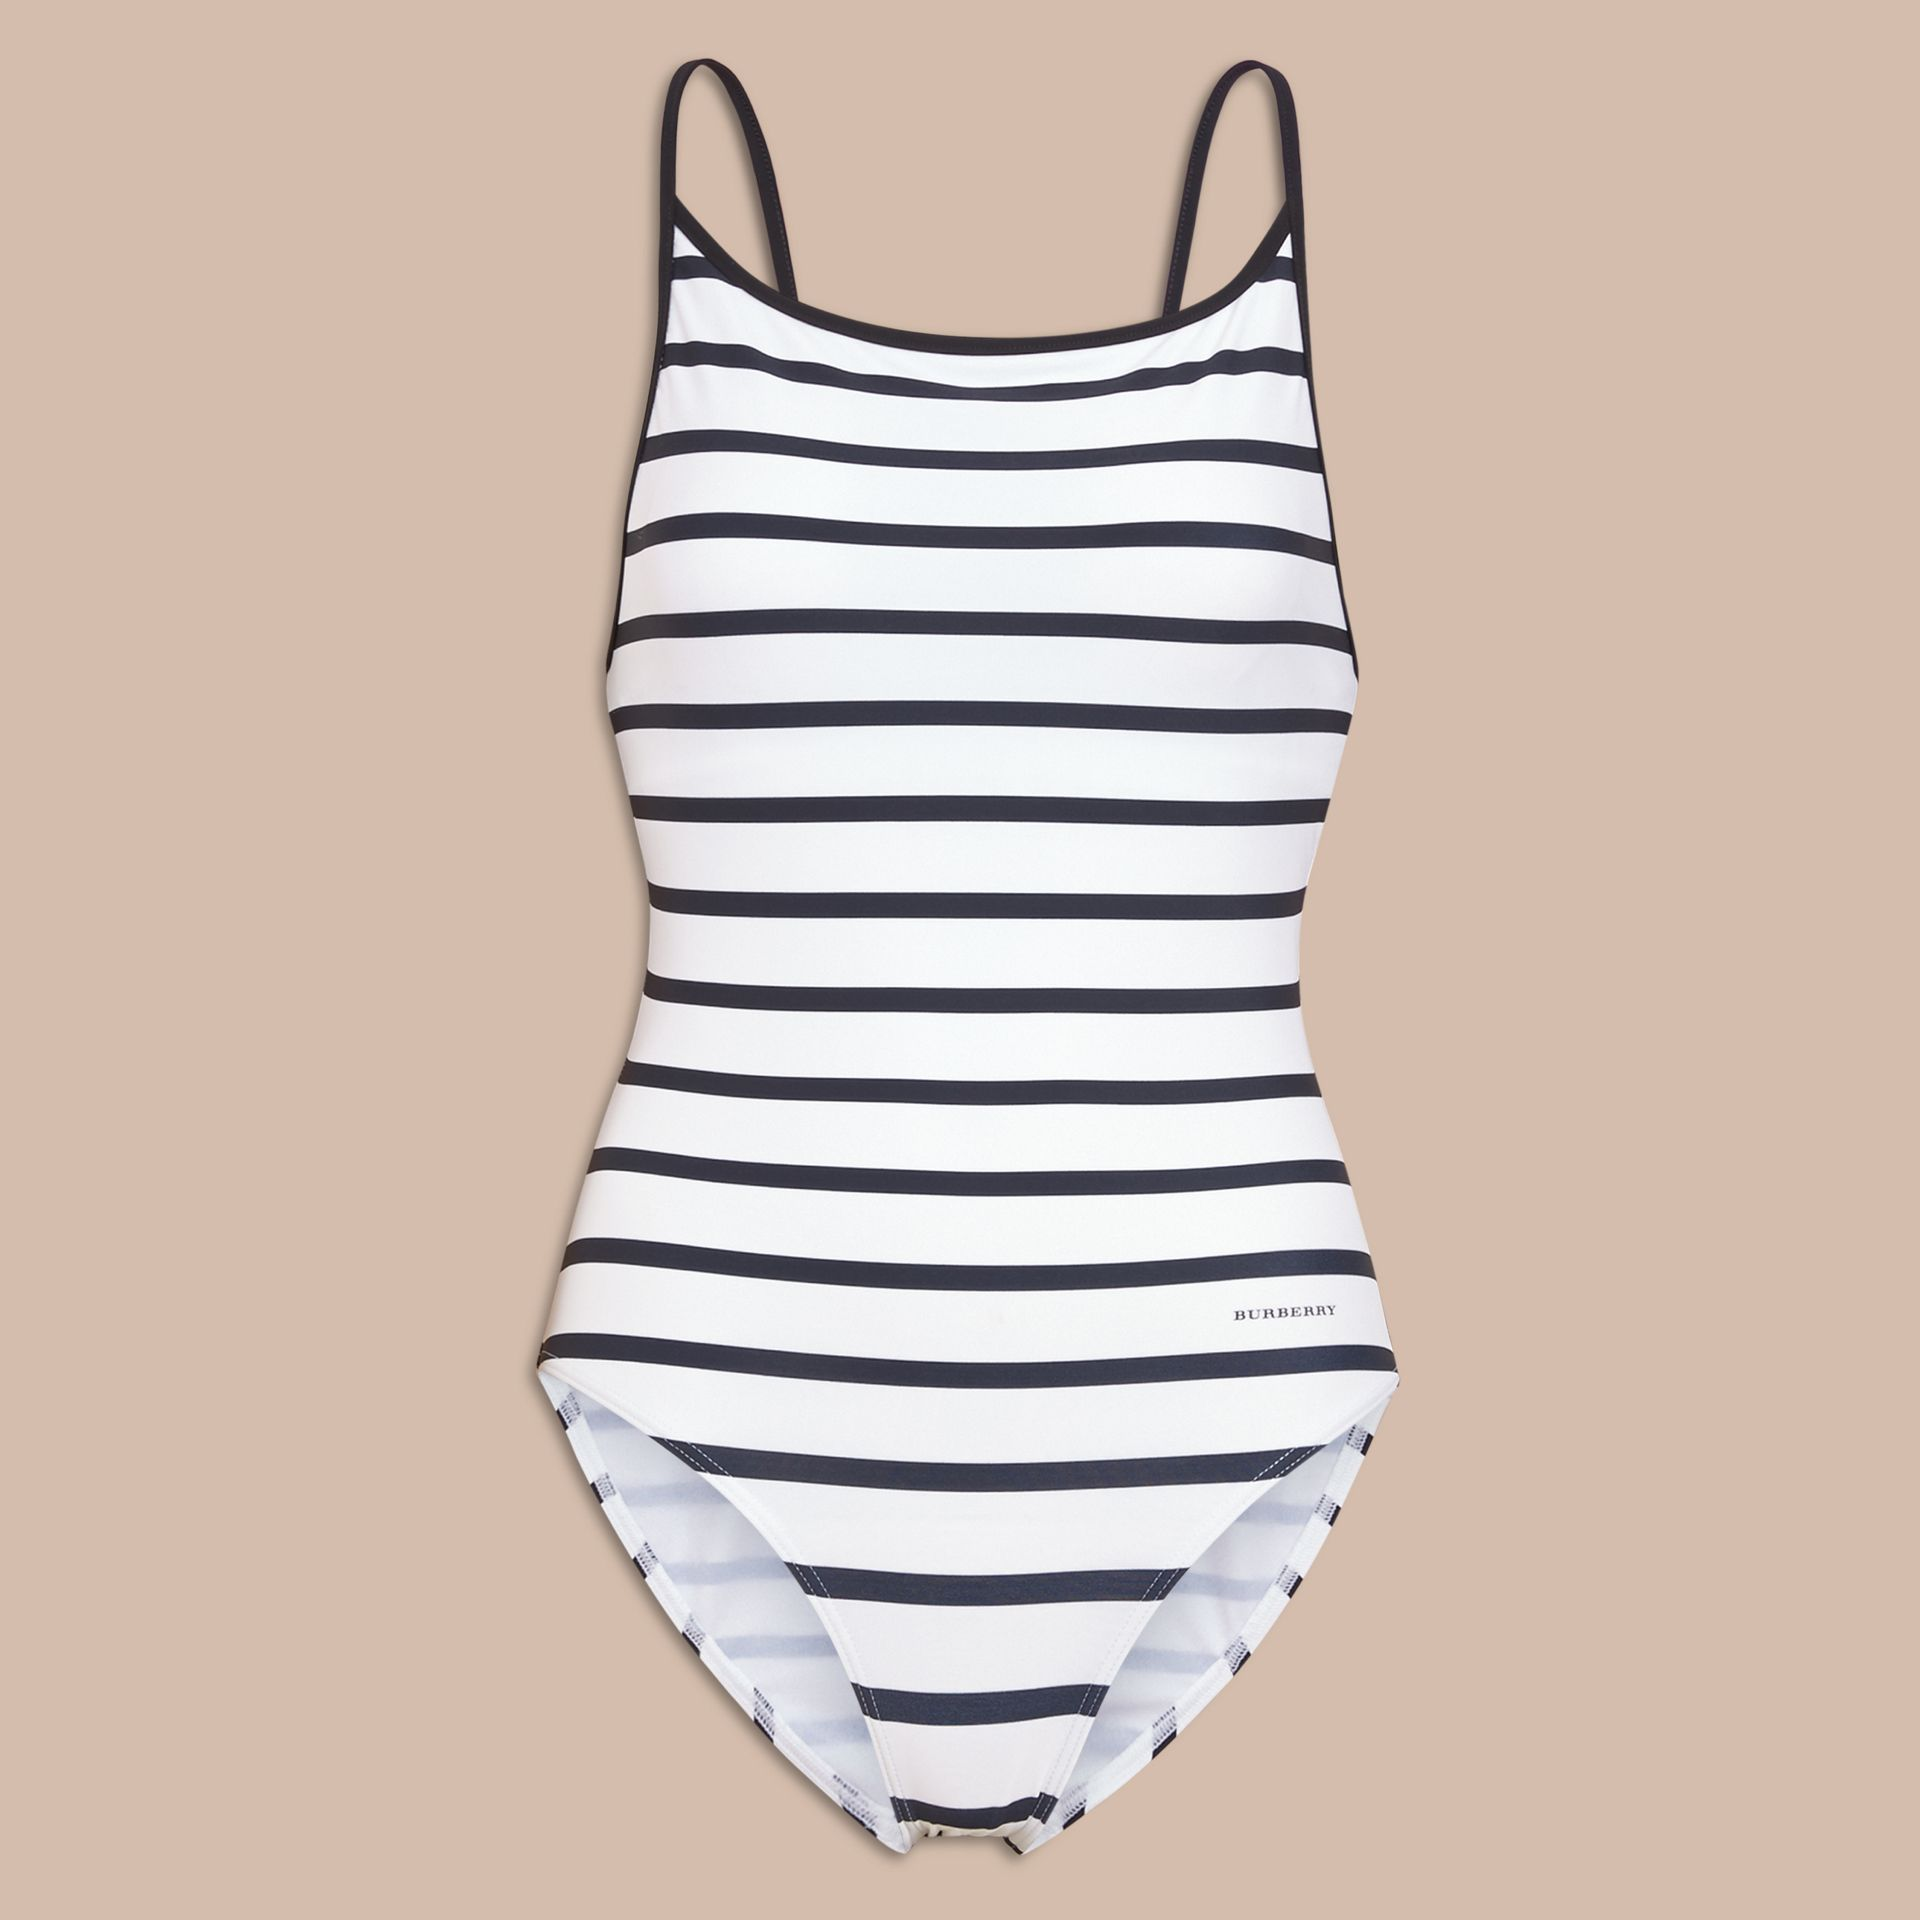 Breton Stripe Swimsuit in Navy - Women | Burberry - gallery image 1